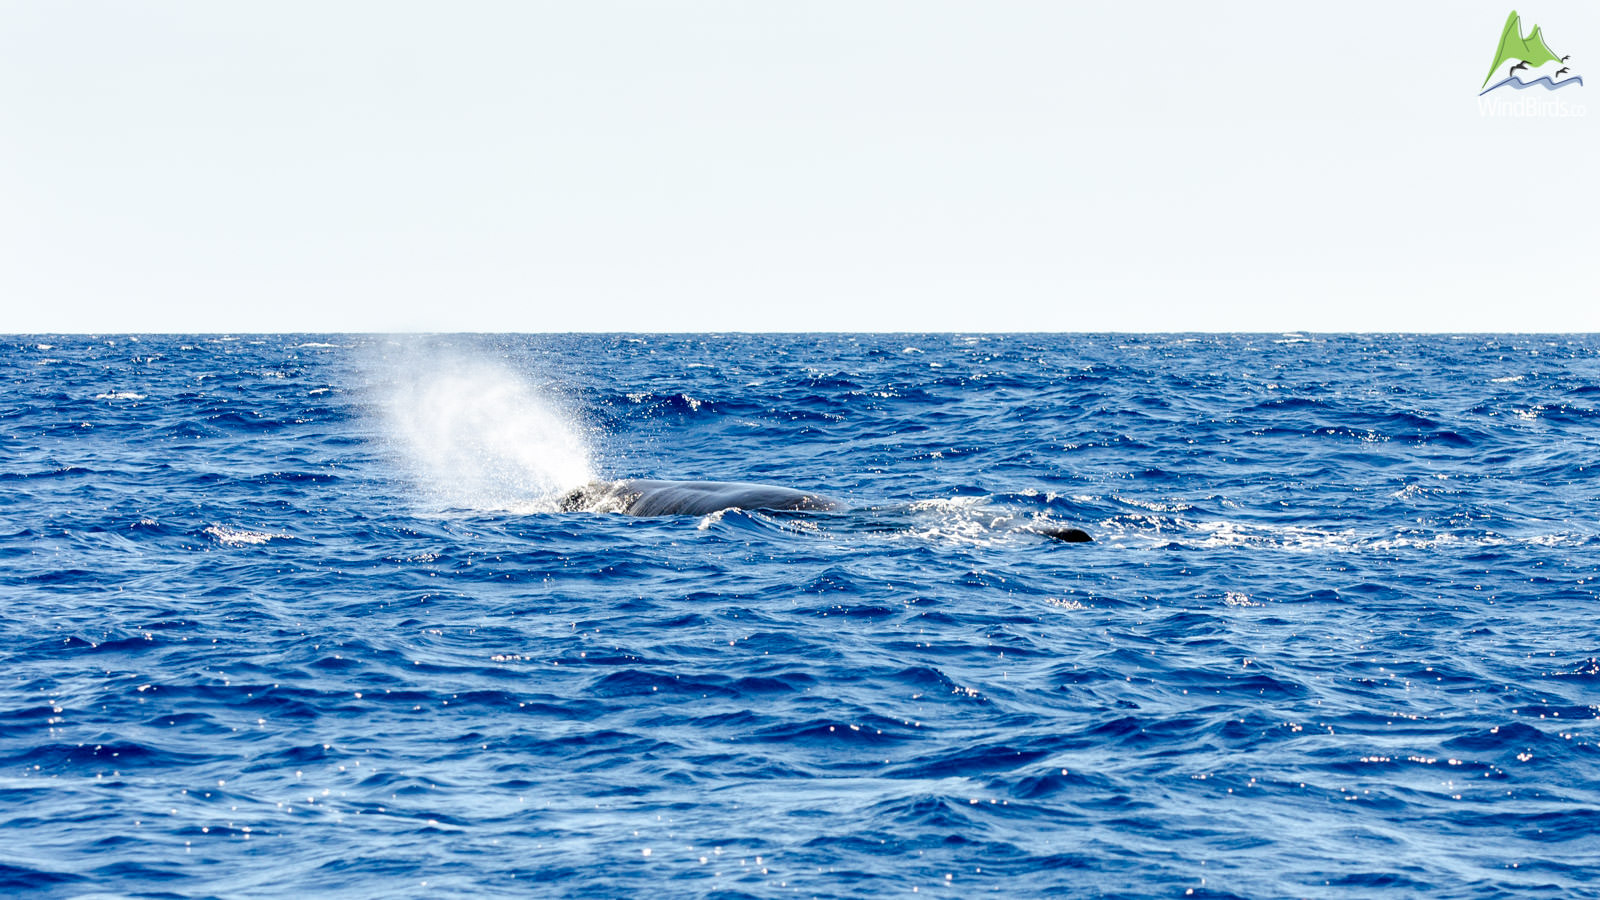 Madeira Whale Watching Trip Madeira whale watching Sperm whale Physeter macrocephalus